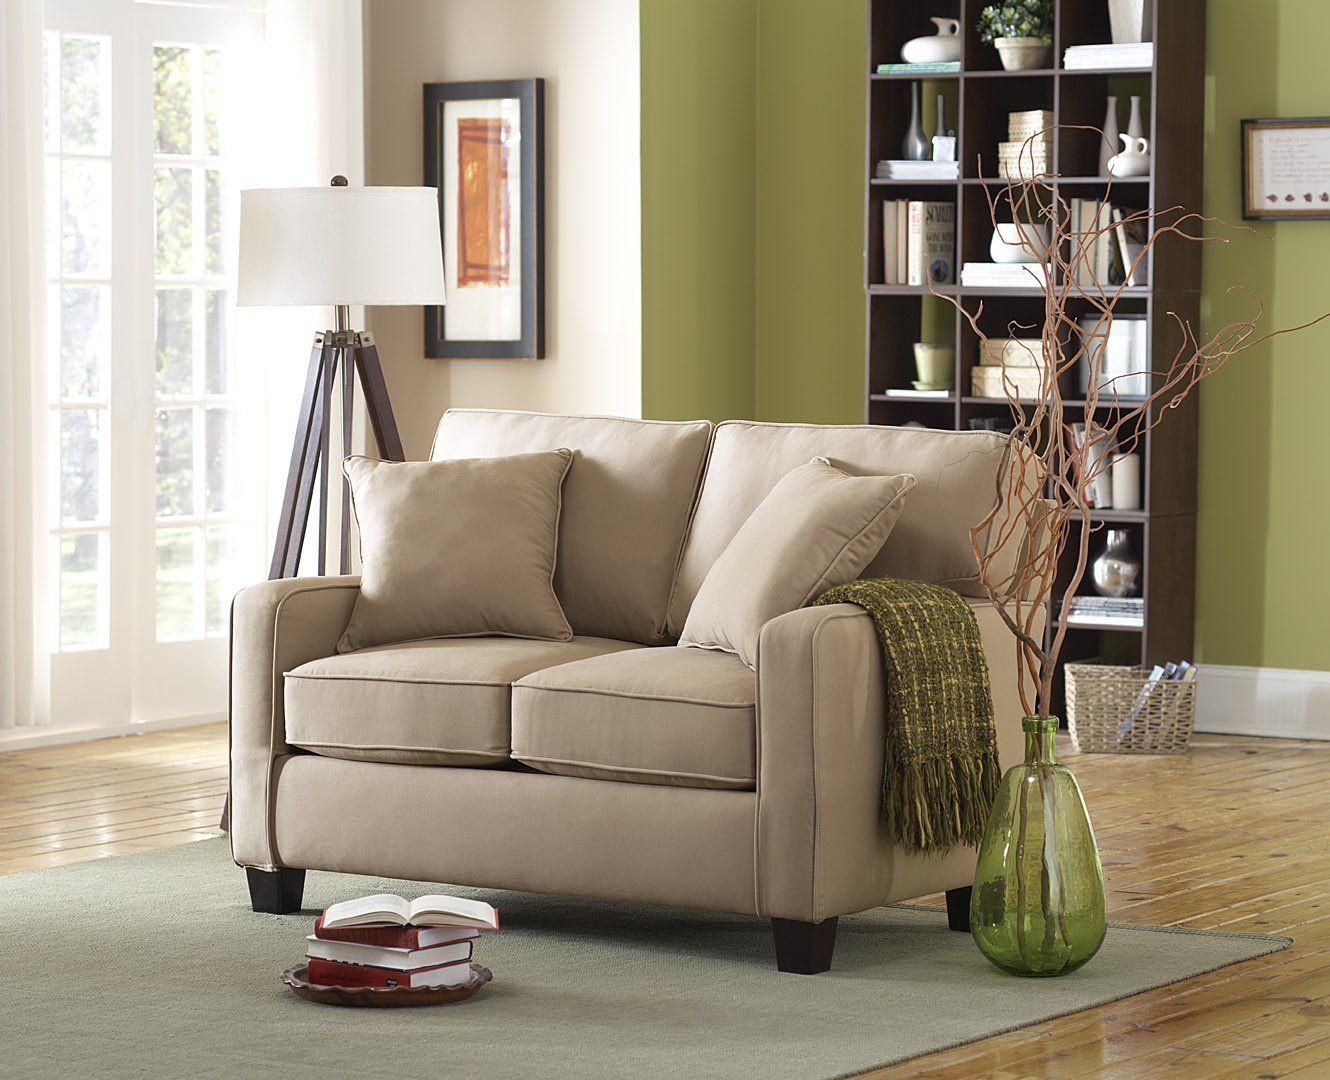 $375 Amazon.com - Sofab Coco Love Seat, Beige - Loveseat